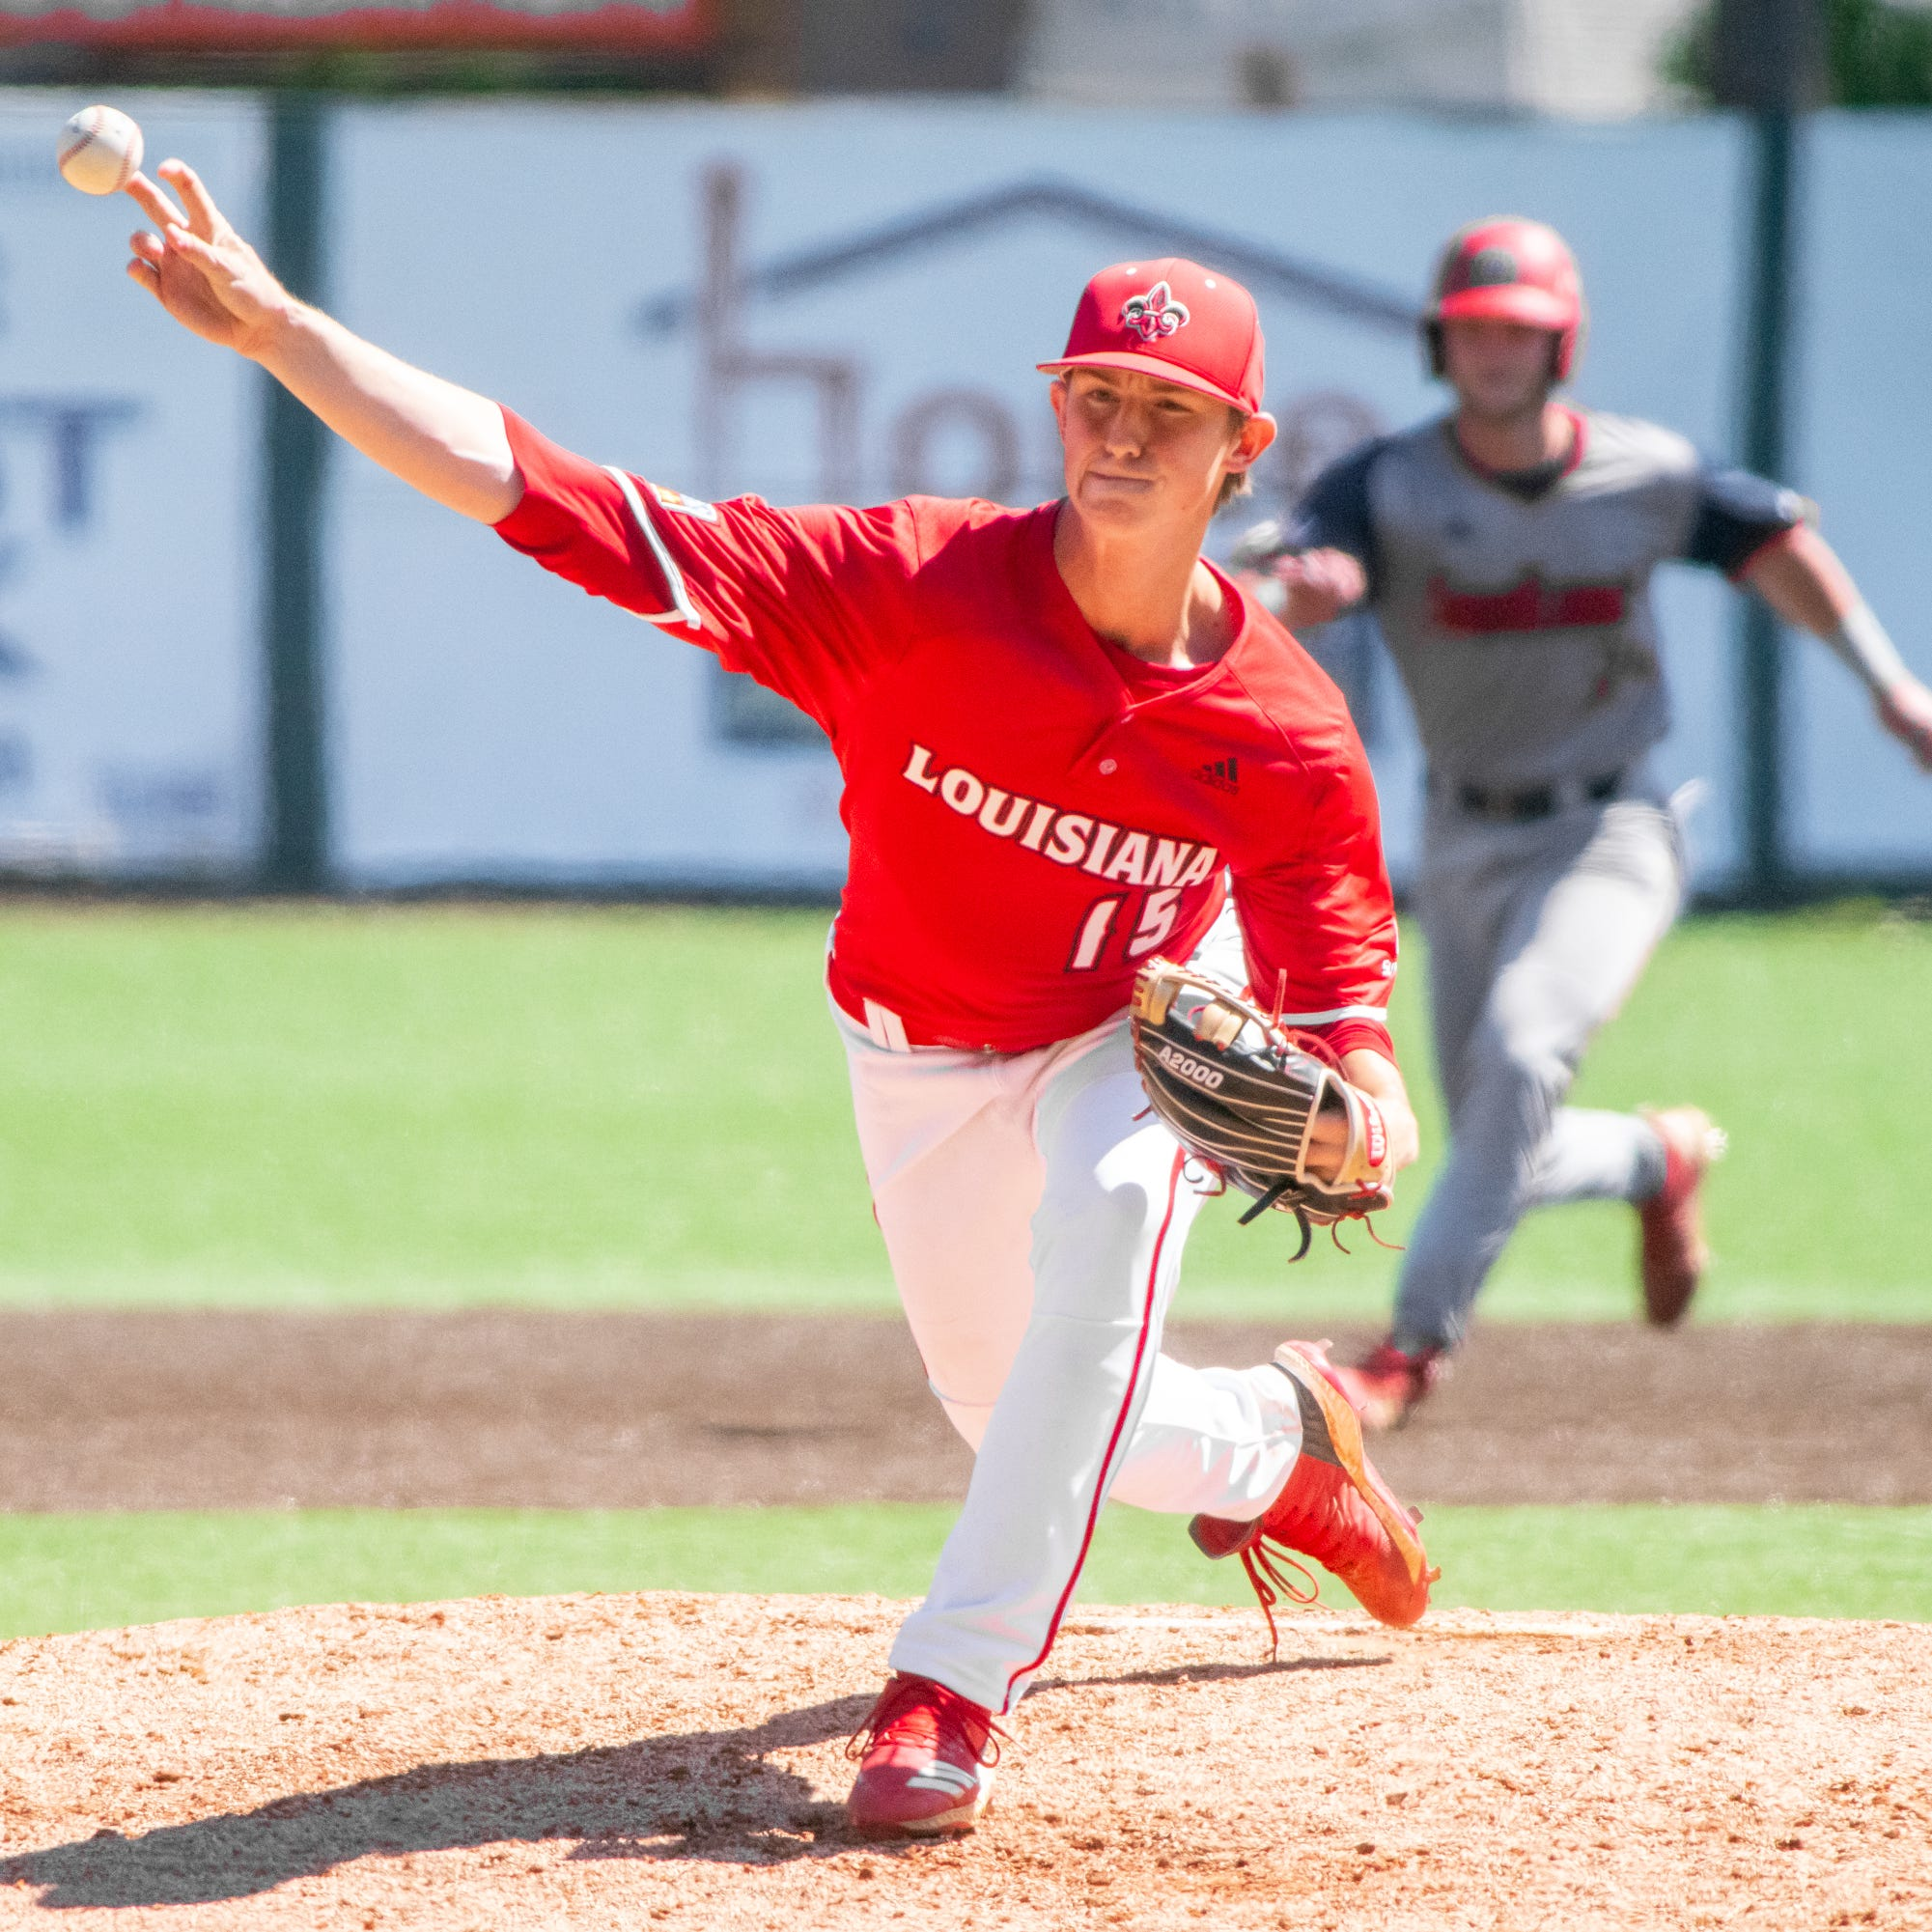 Comfort zone appears to be bullpen for UL's Schultz